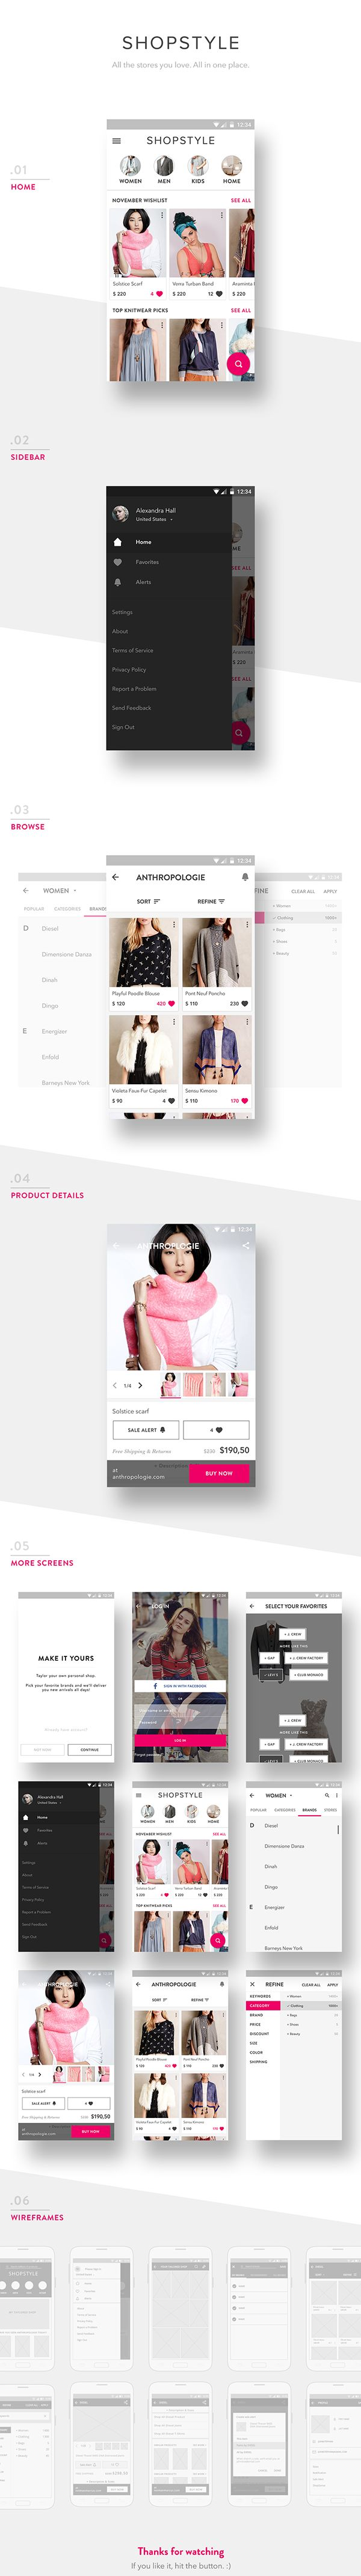 wedding card design software for android%0A Find the latest couture and fashion designers while shopping for clothes   shoes  jewelry  wedding dresses and more